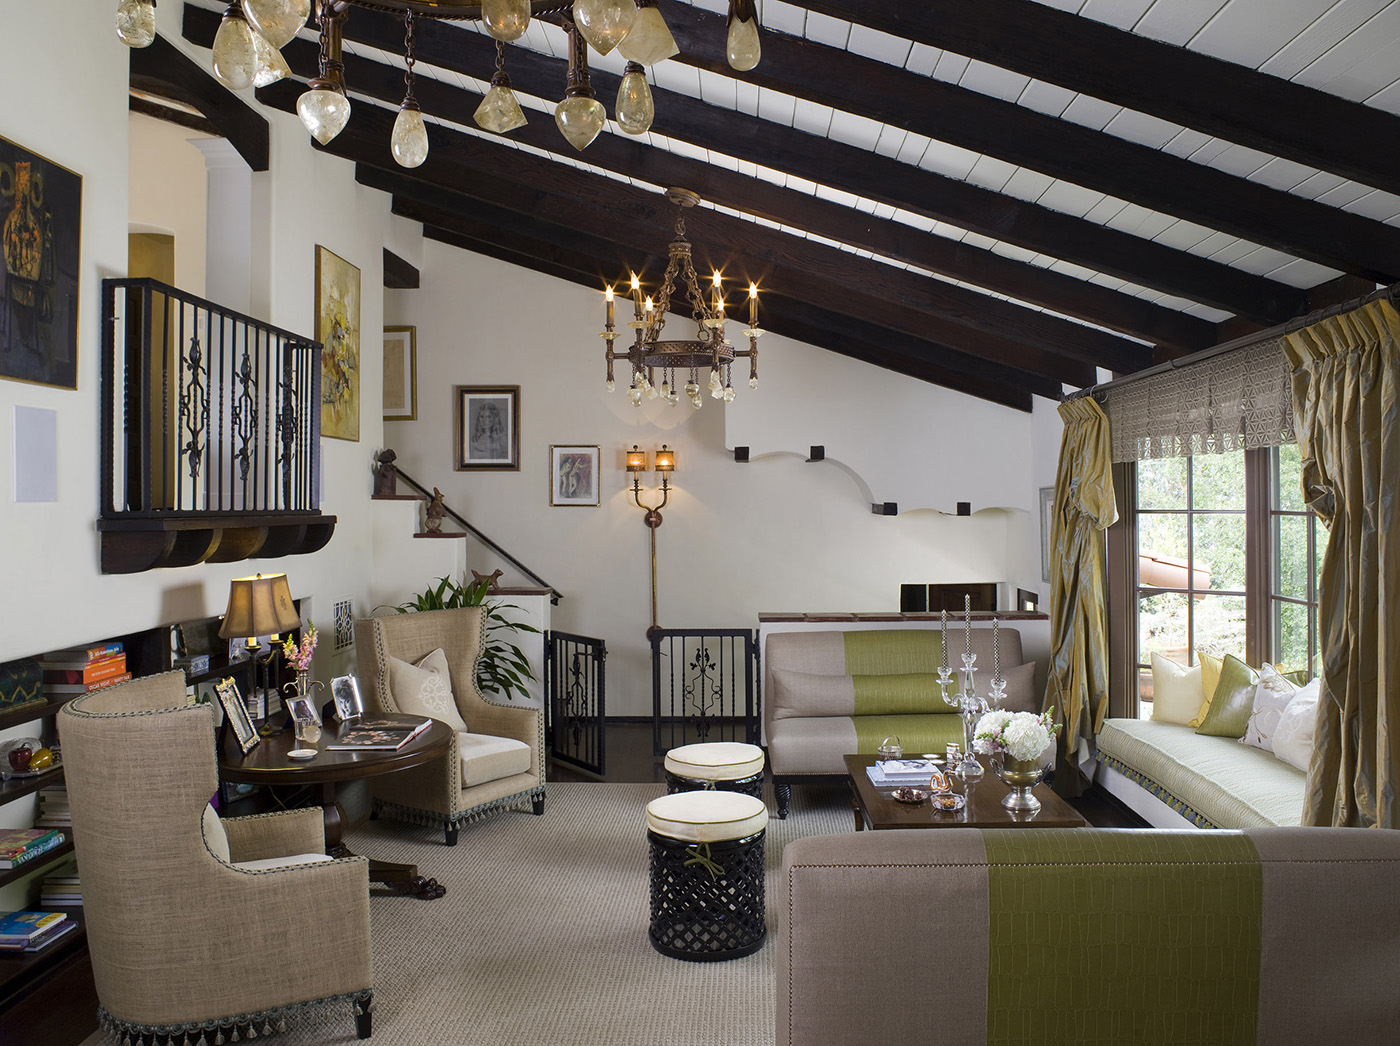 hip hacienda with traditional wooden beam ceilings and groovy lime green design details